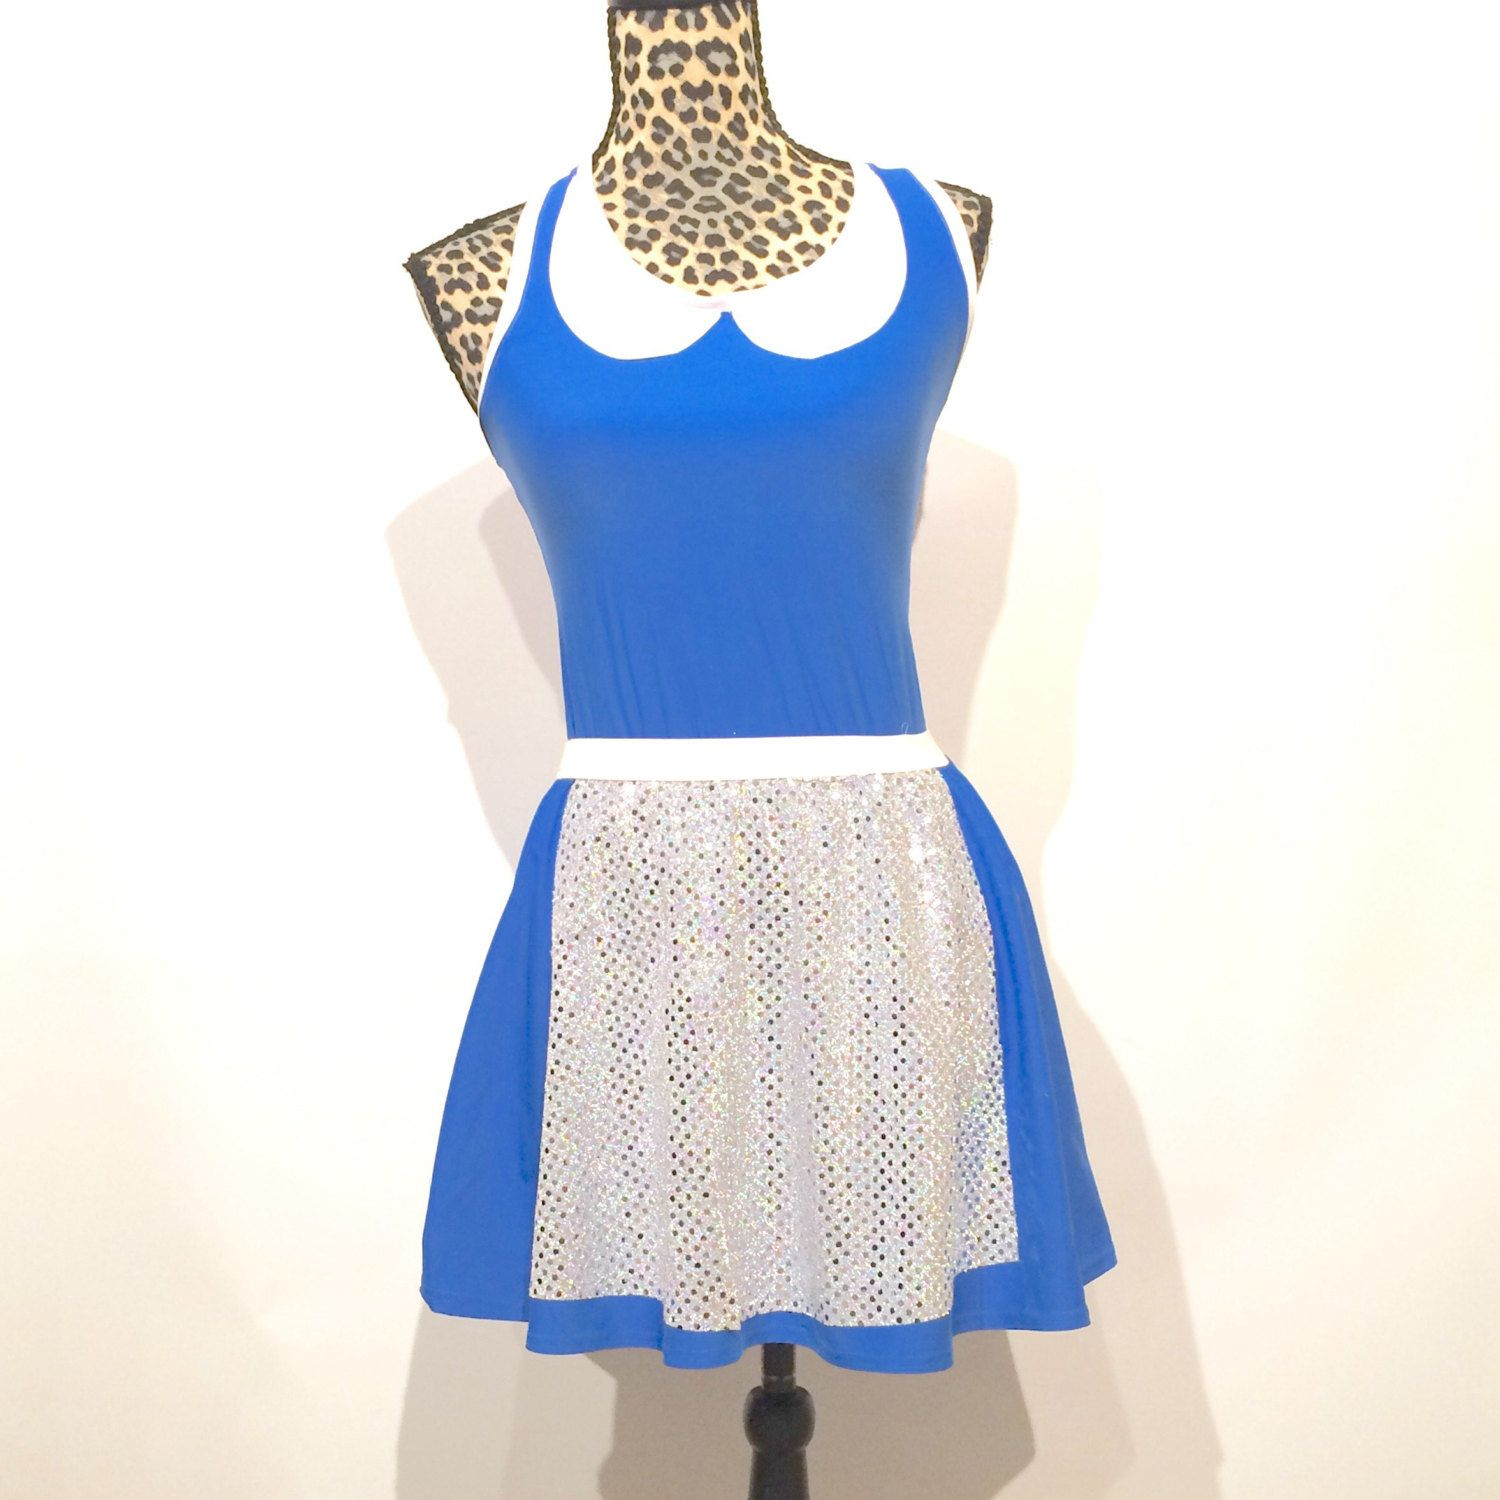 White apron belle - Provincial Belle From Beauty And Beast Inspired Running Costume Shirt And Skirt With Apron Running Costume